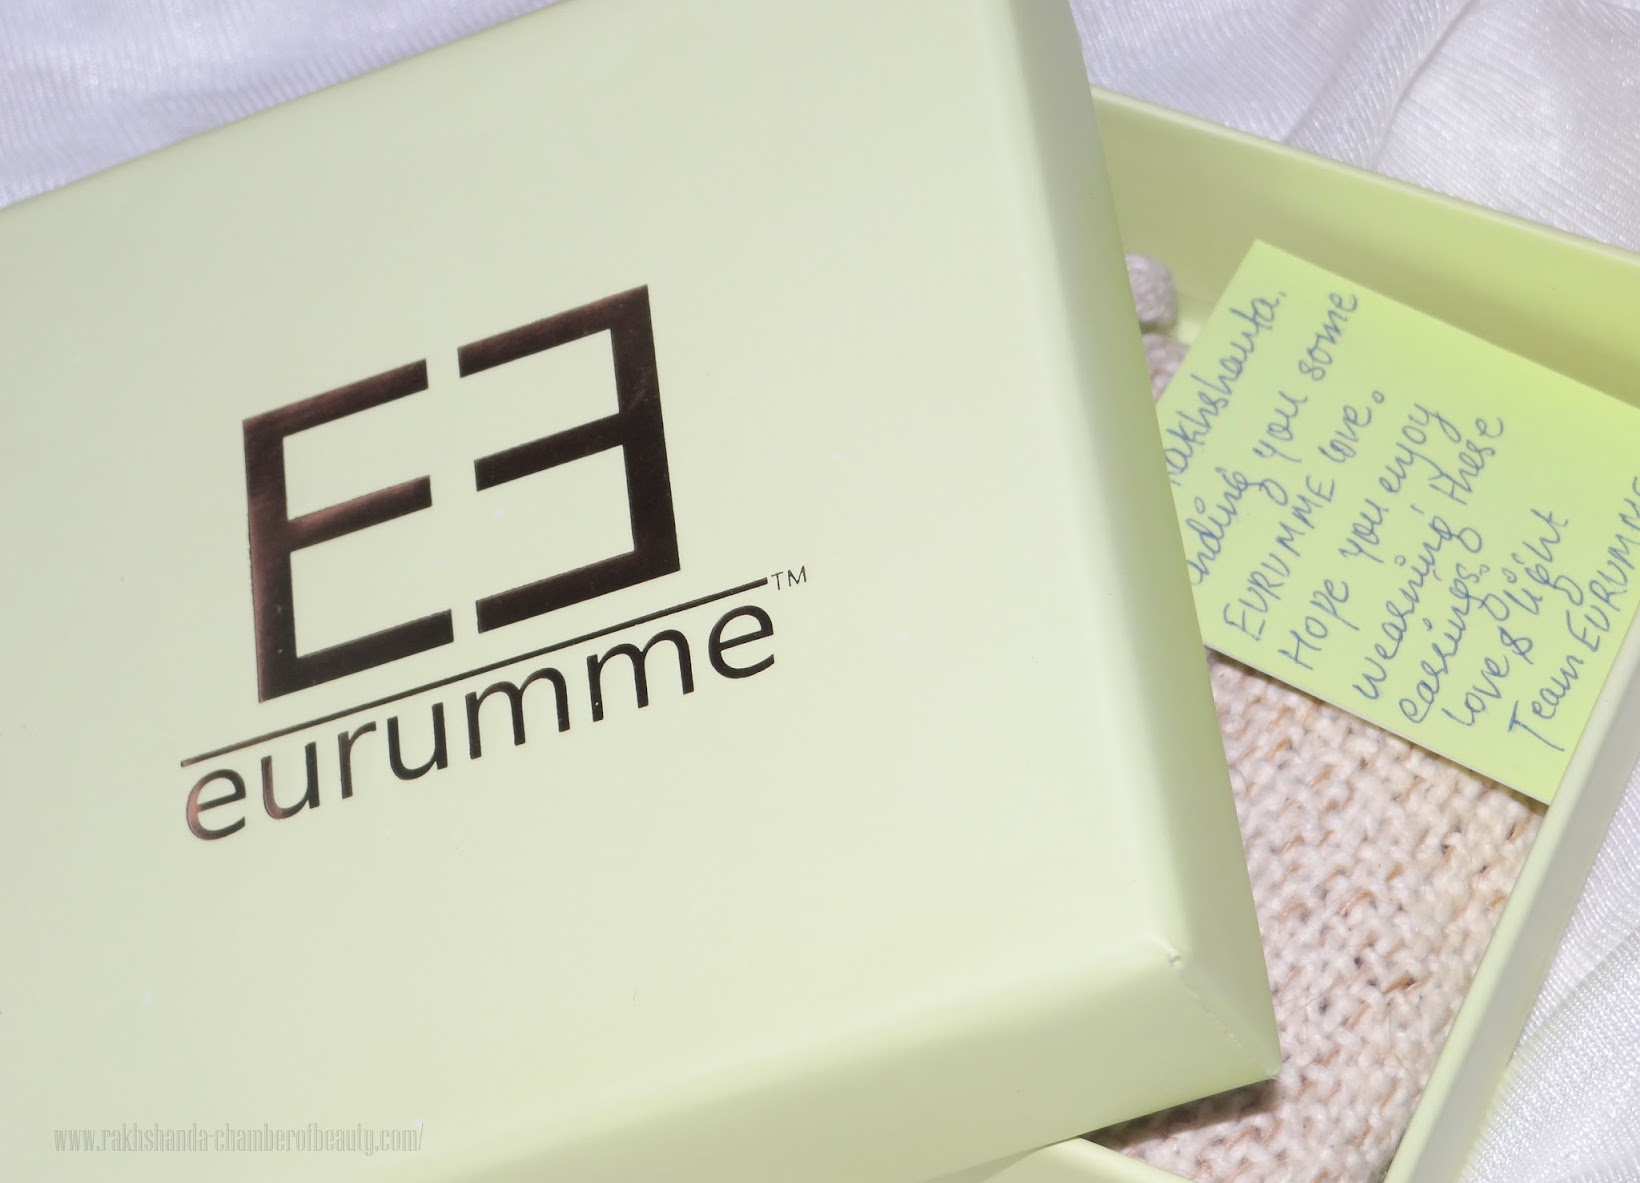 Signature Earrings from Shop Eurumme